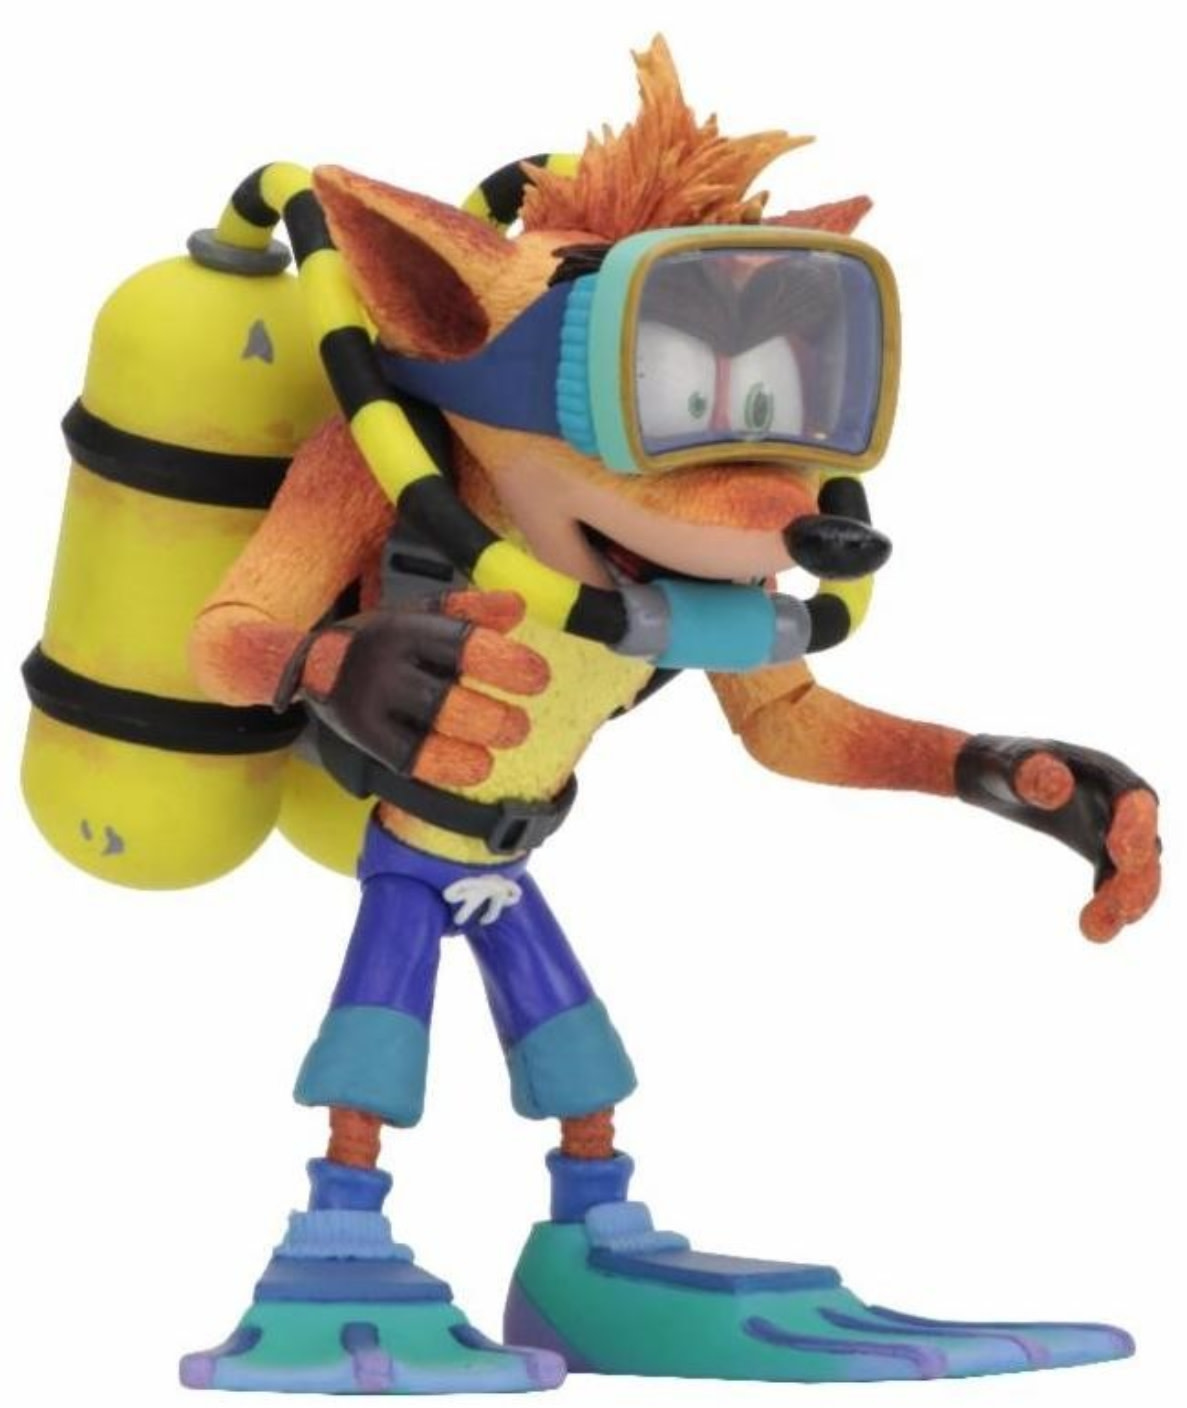 NECA Crash Bandicoot: Deluxe Crash Bandicoot with Scuba Gear 7 inch